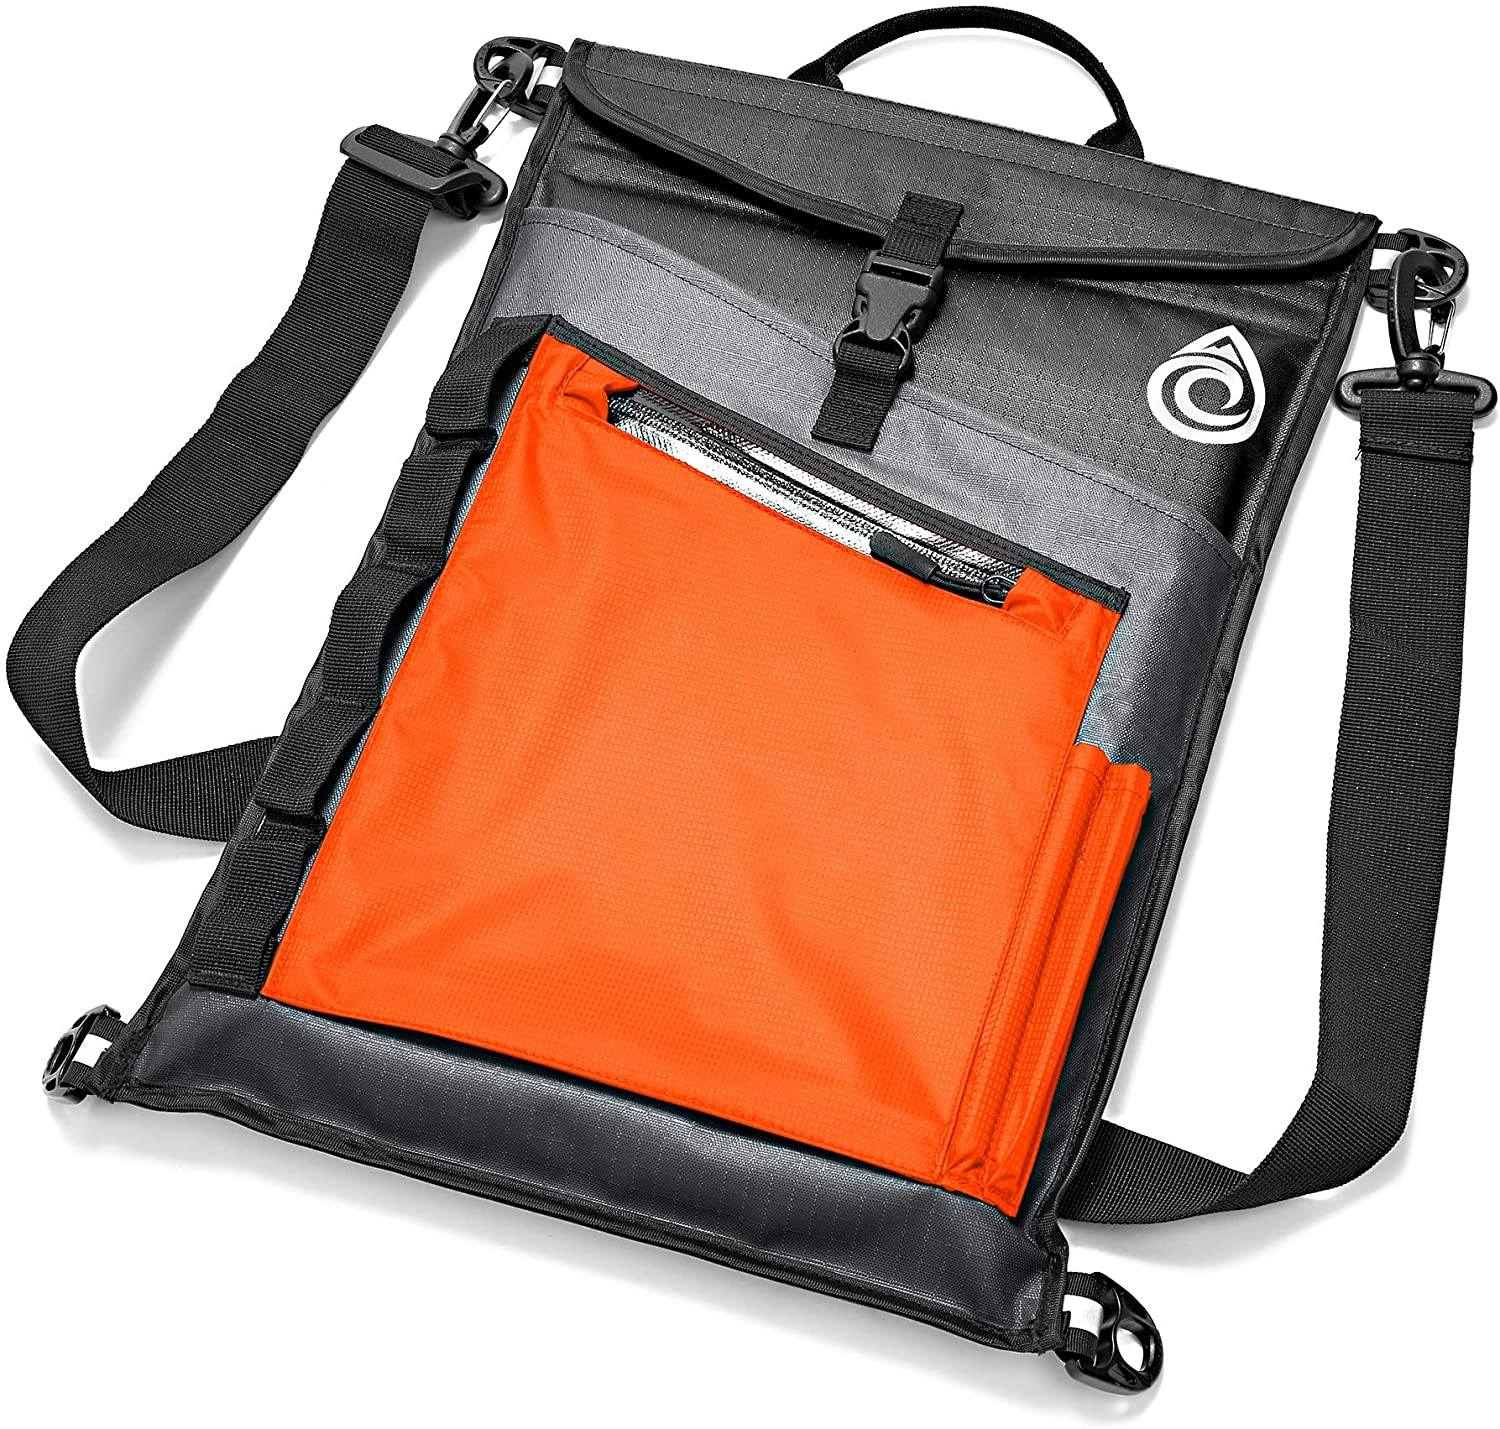 AquaQuest Typhoon Laptop Case - 100% Waterproof, Versatile, Durable, Lightweight, Compact Messenger Bag - Protective Padded Computer Sleeve Pouch Cover - 13